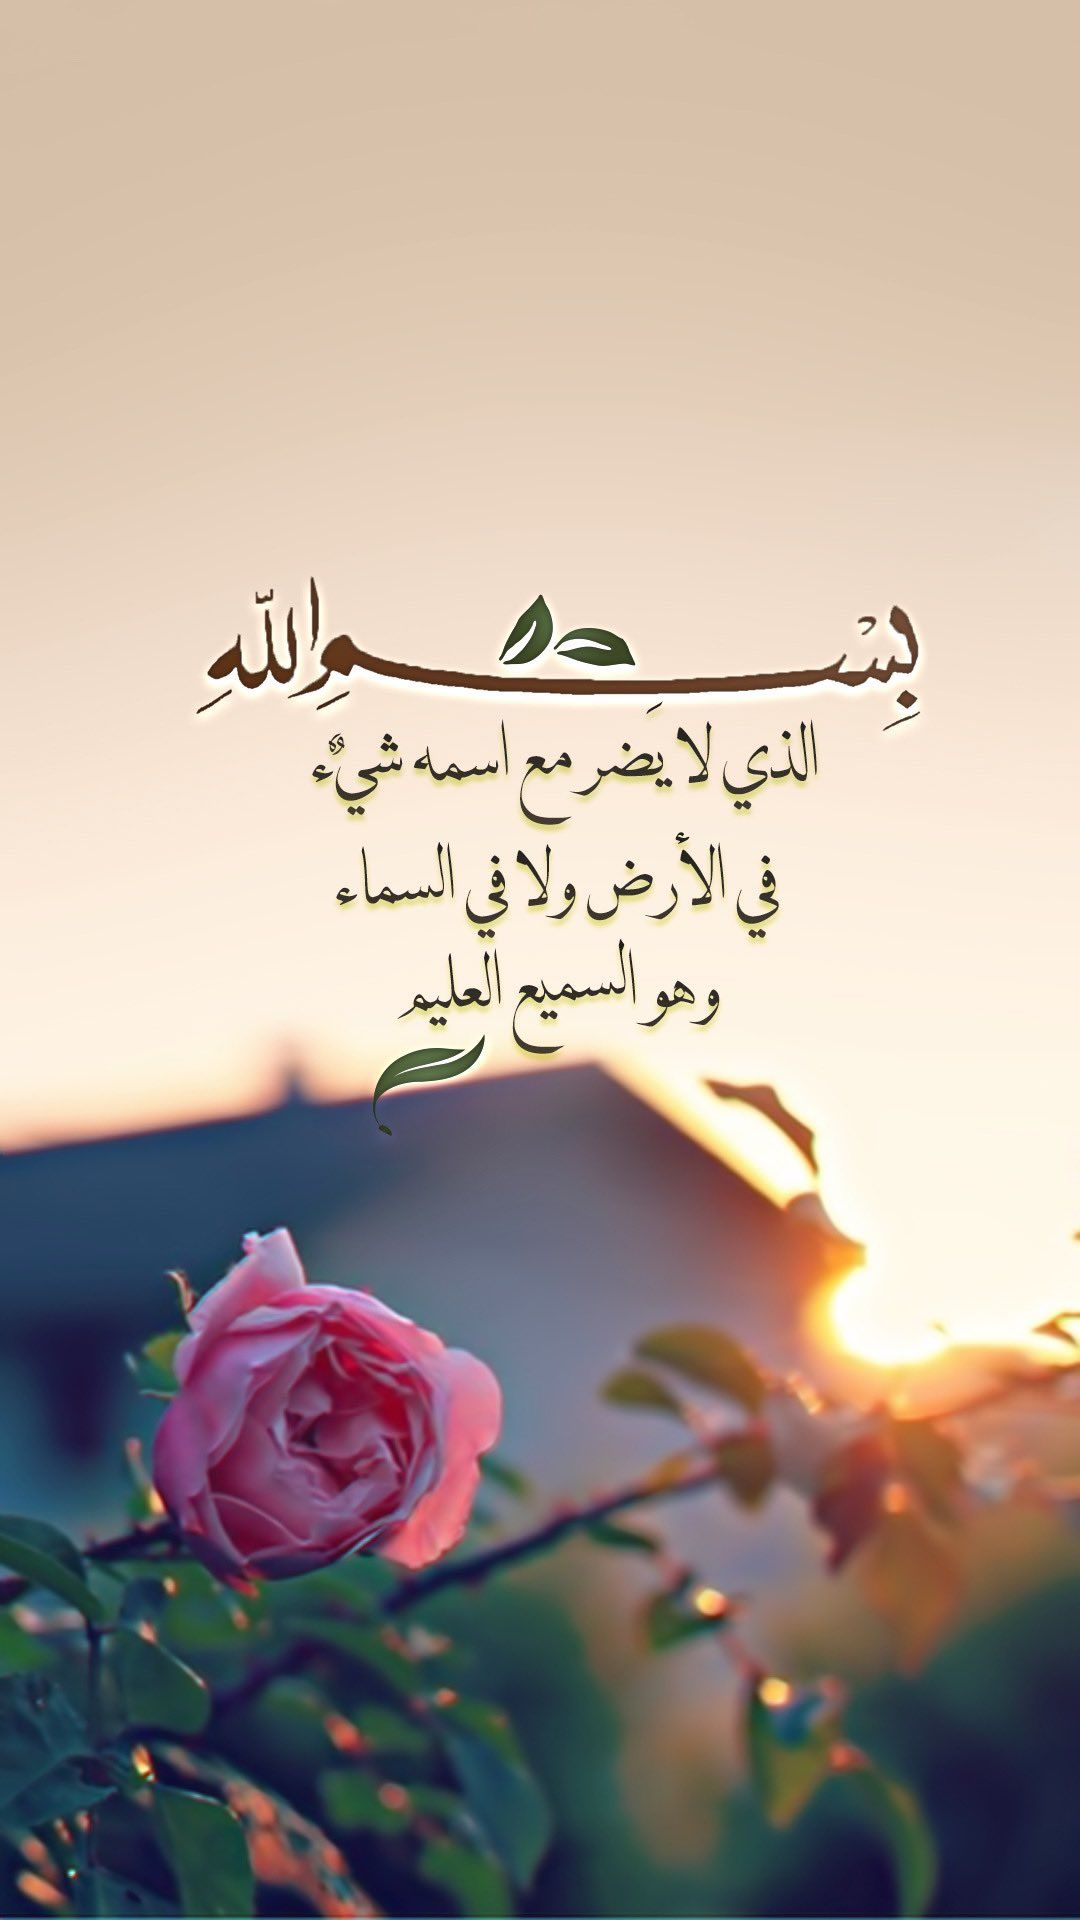 Pin By Zuhura Salum On Islam Prayer For The Day Islamic Images Quran Quotes Inspirational